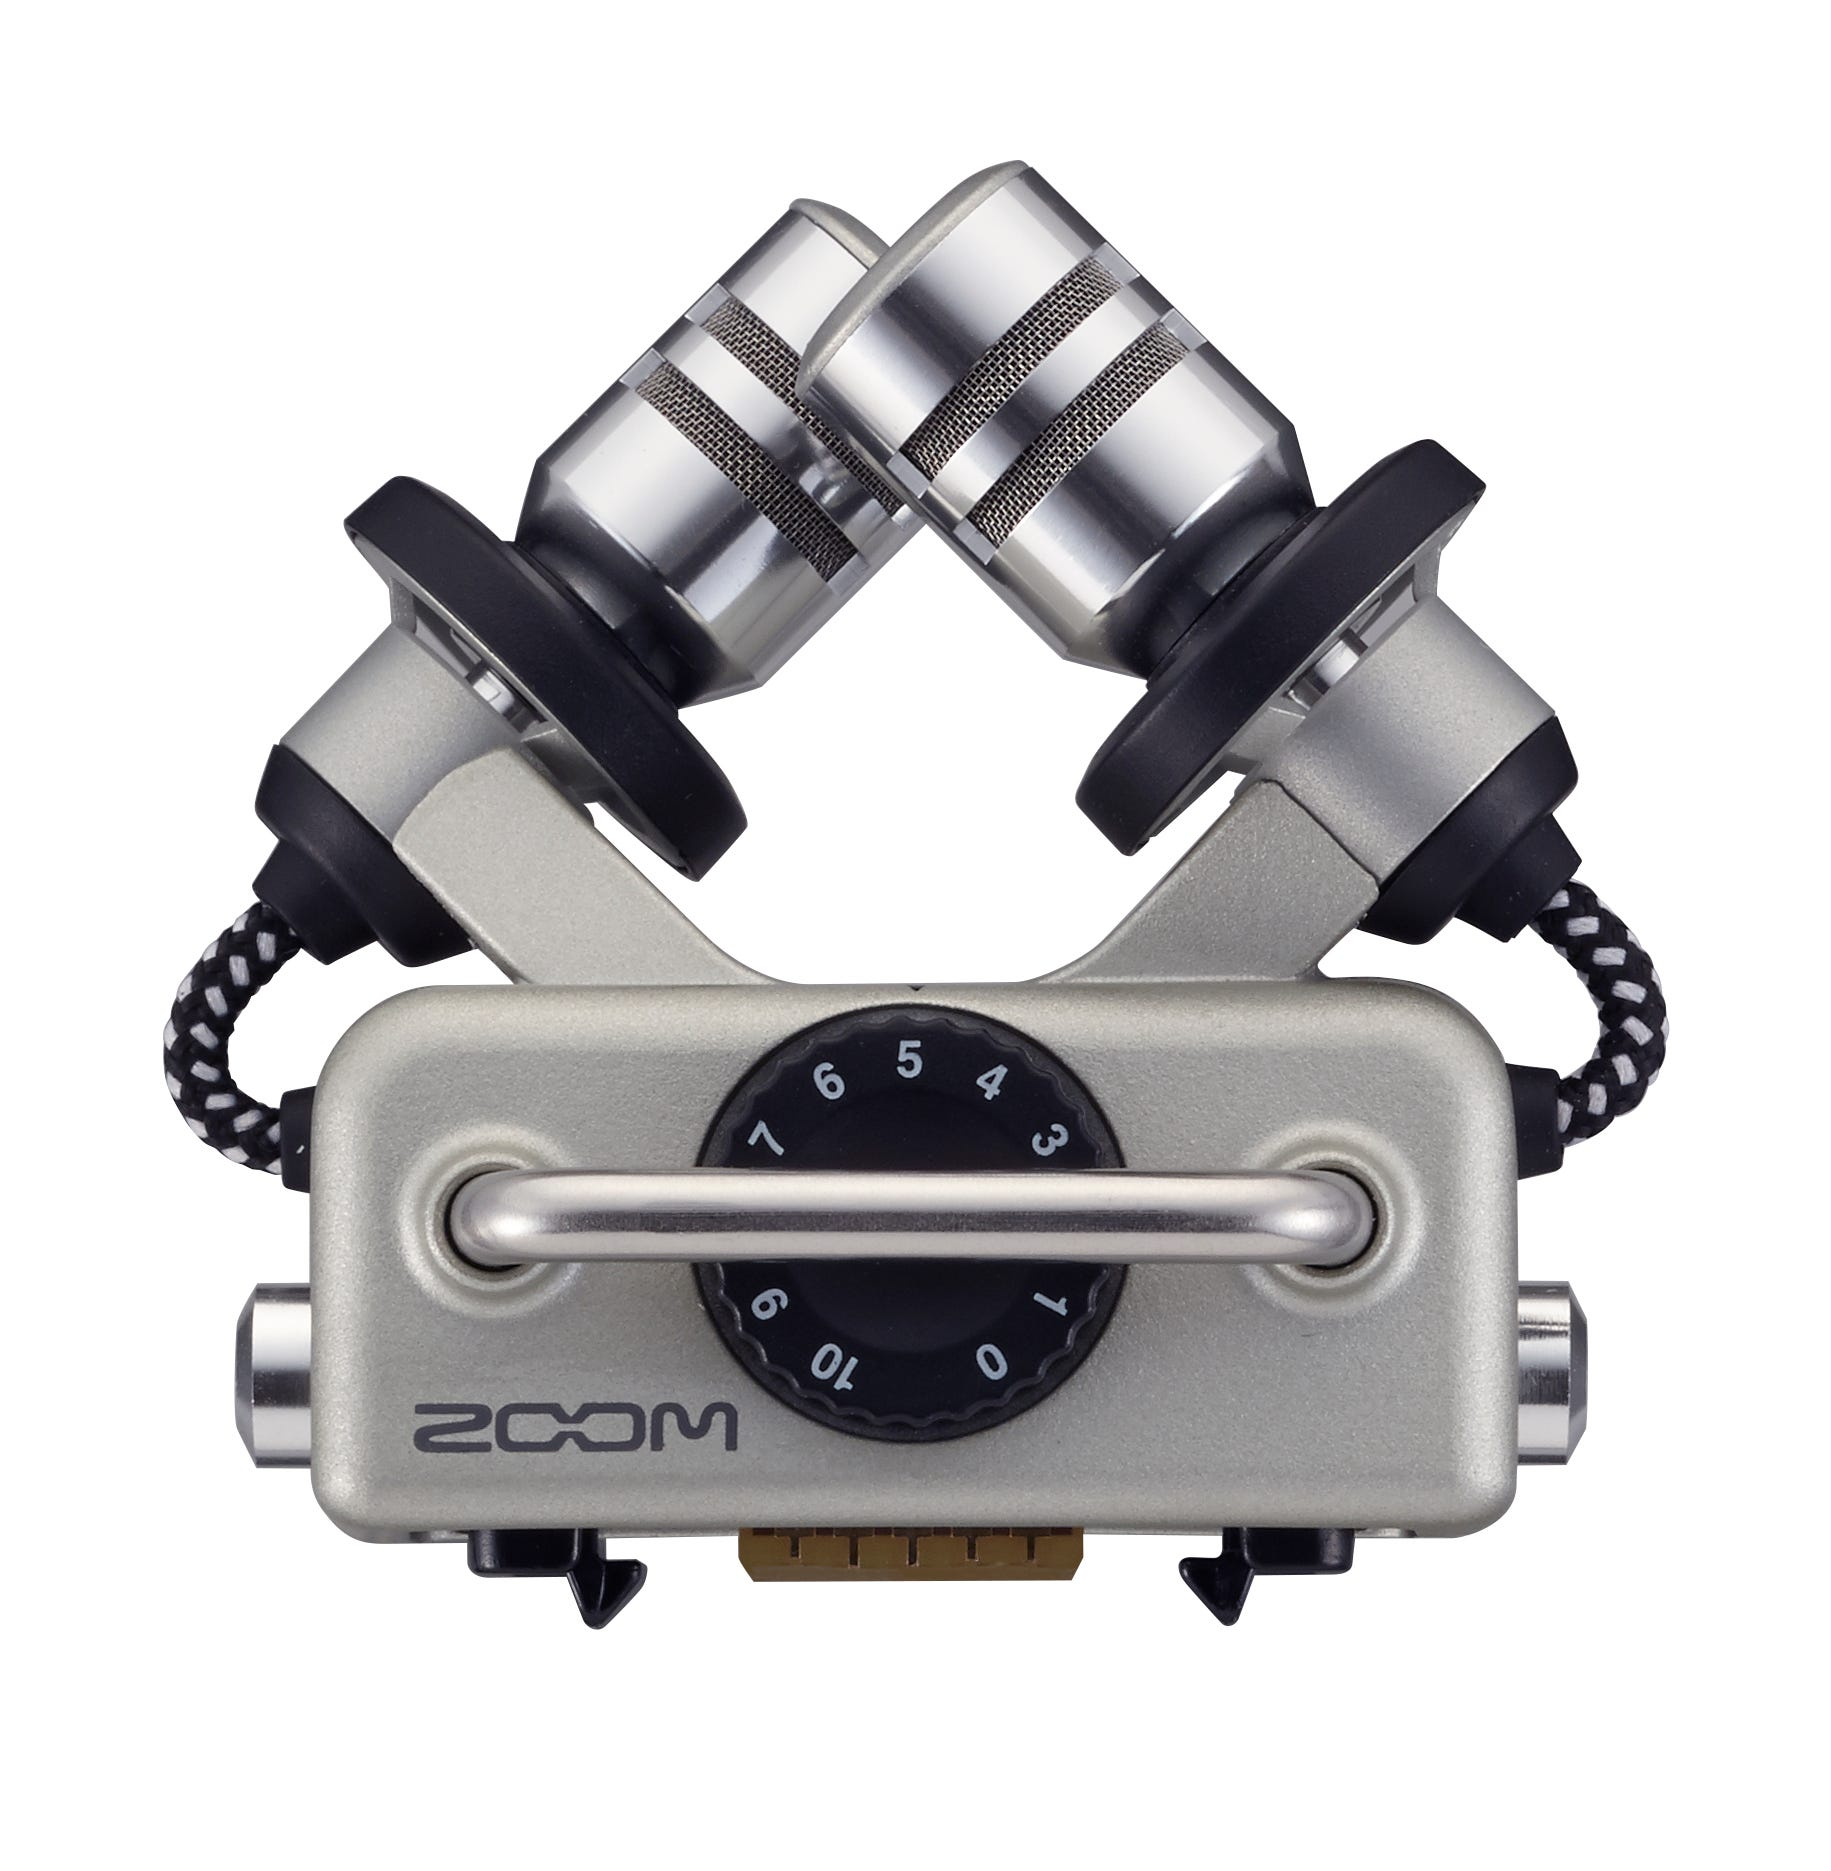 Zoom ZH5 Recorder with Interchangeable Microphone System